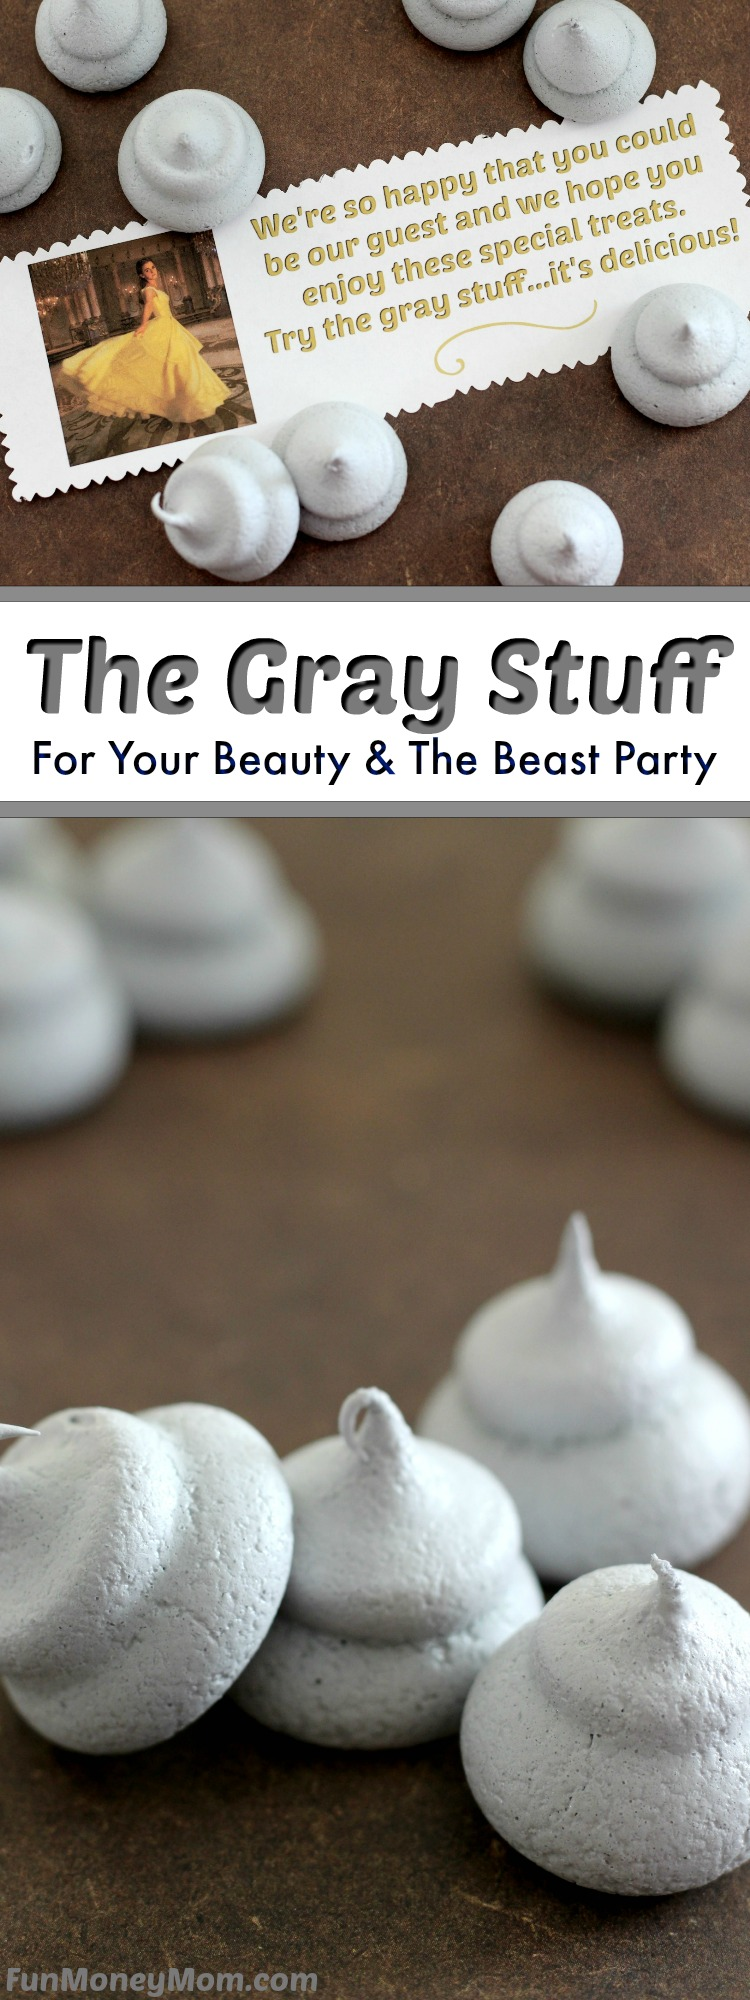 The Gray Stuff - If you're having a Beauty And The Beast Party, you have to have the gray stuff! These melt in your mouth meringue cookies are the perfect sweet treat for a birthday party!